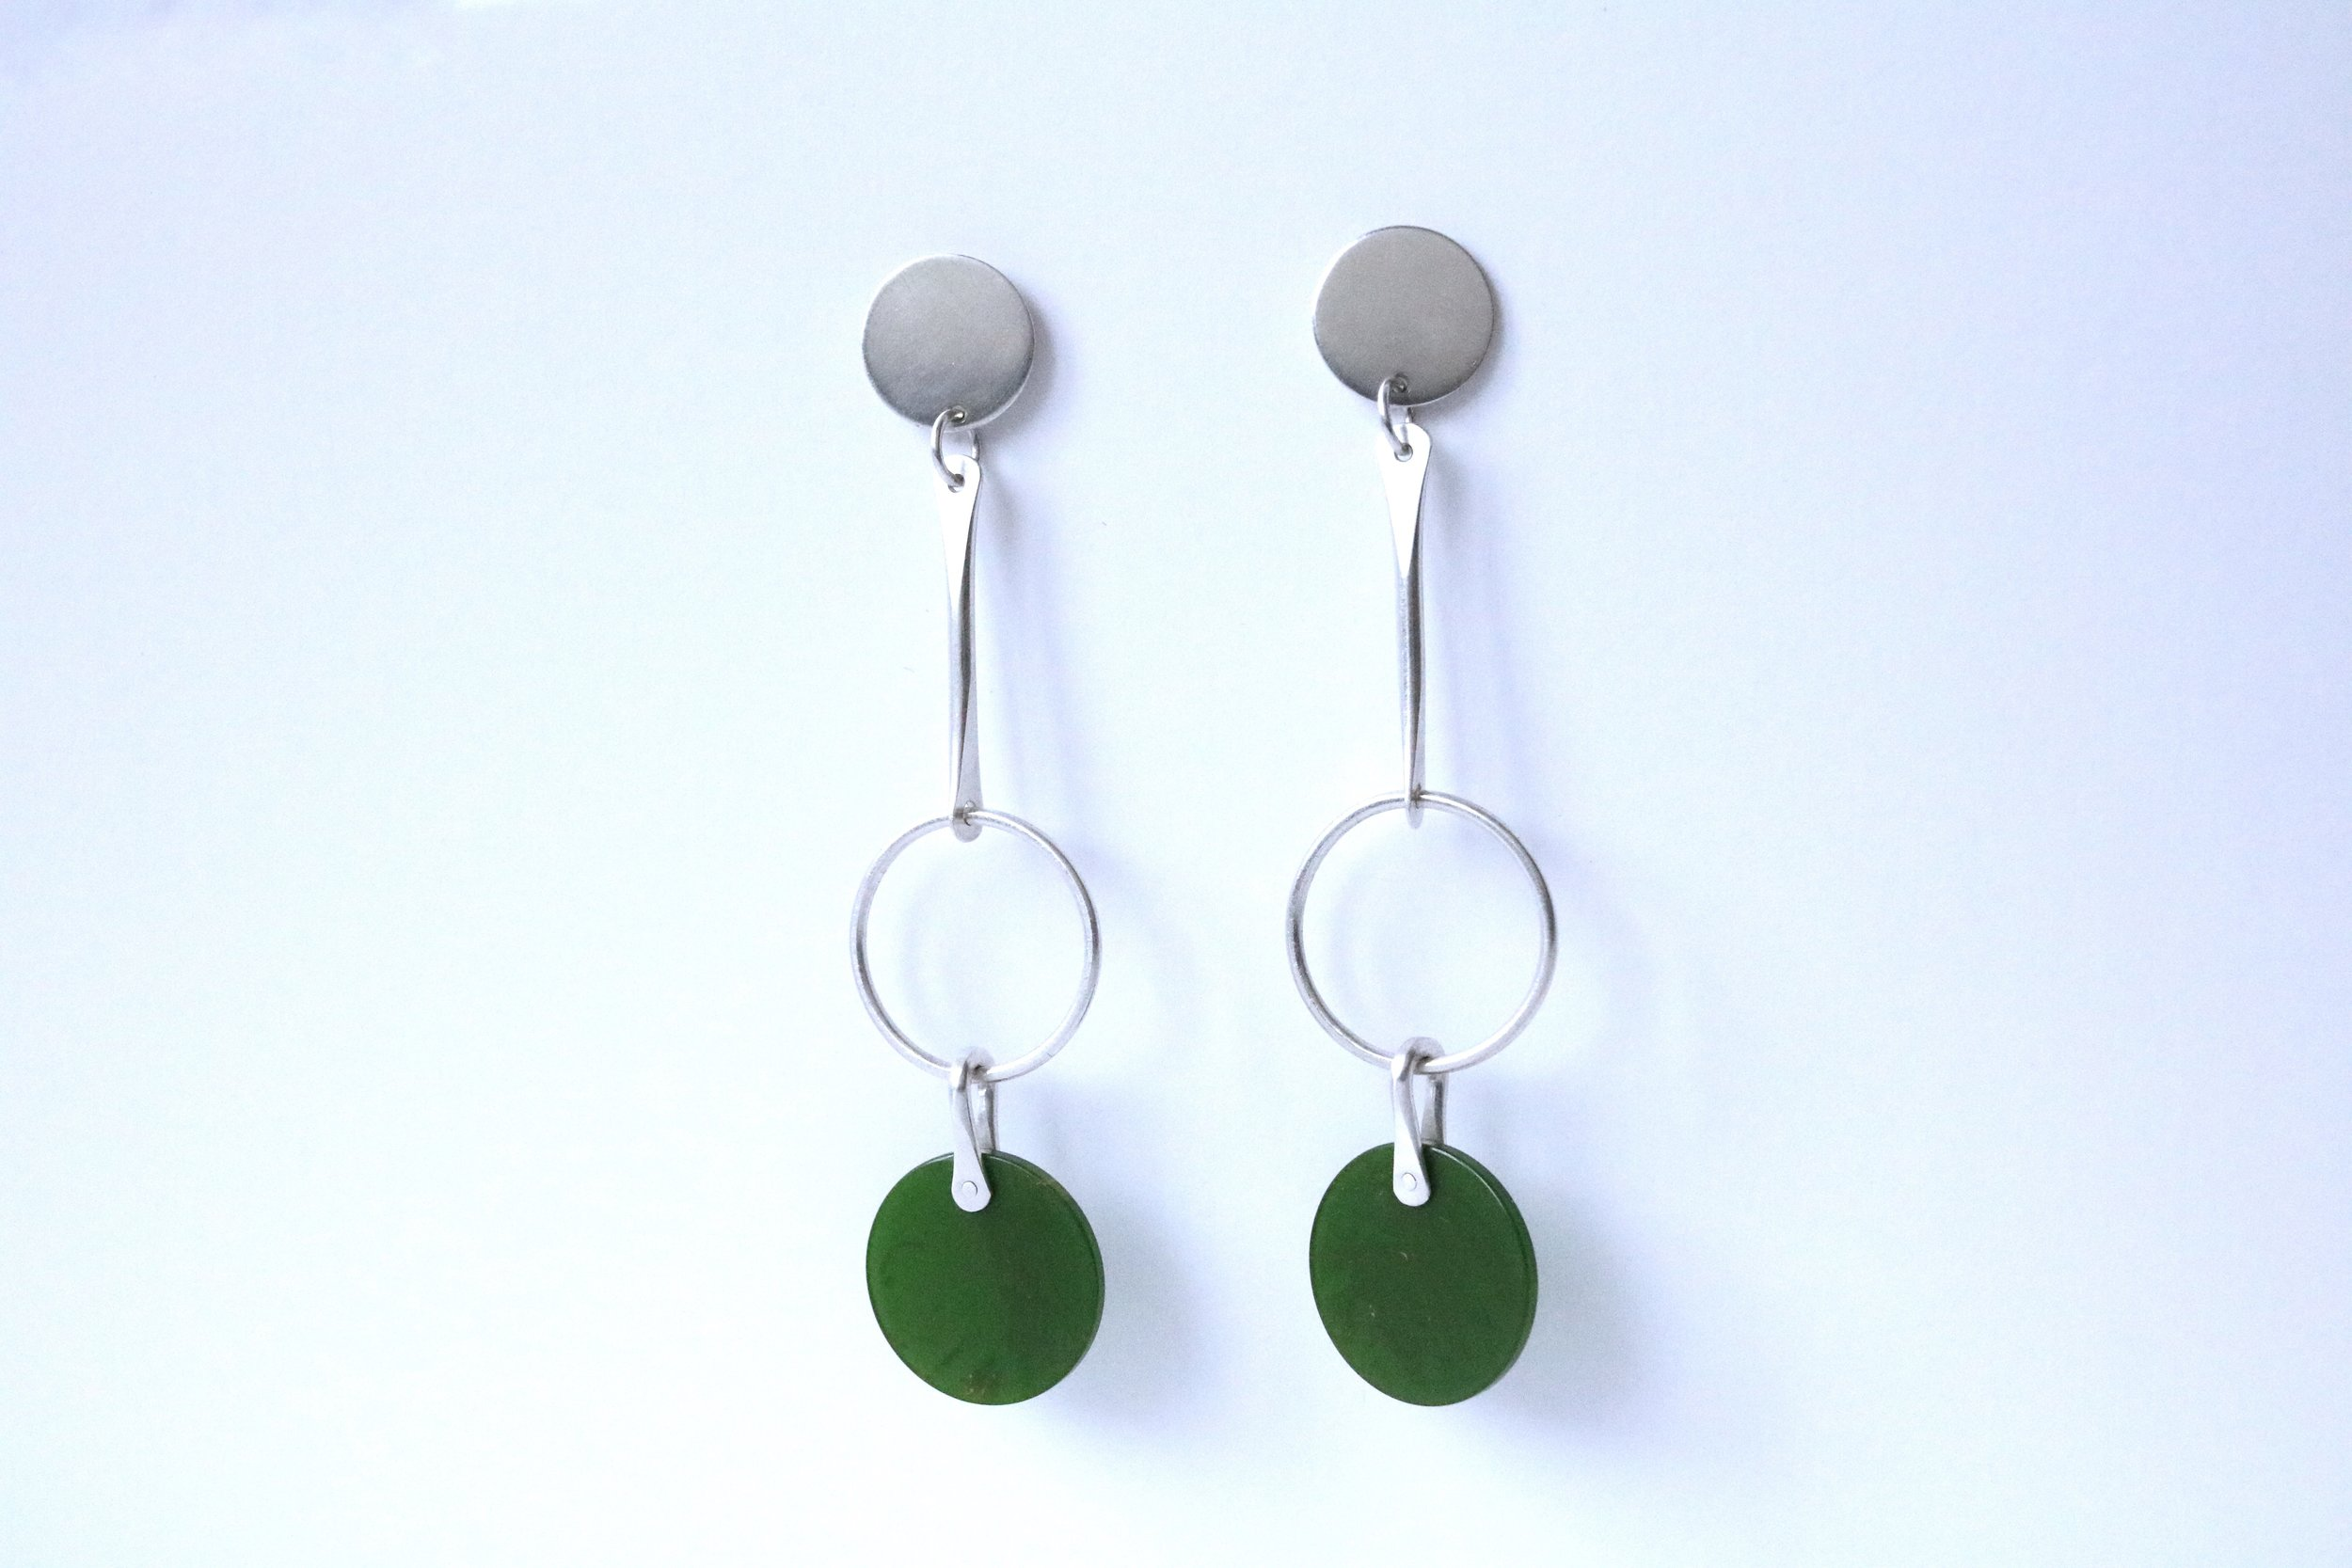 Circle triplet earrings, sterling silver and vintage bakelite, sold